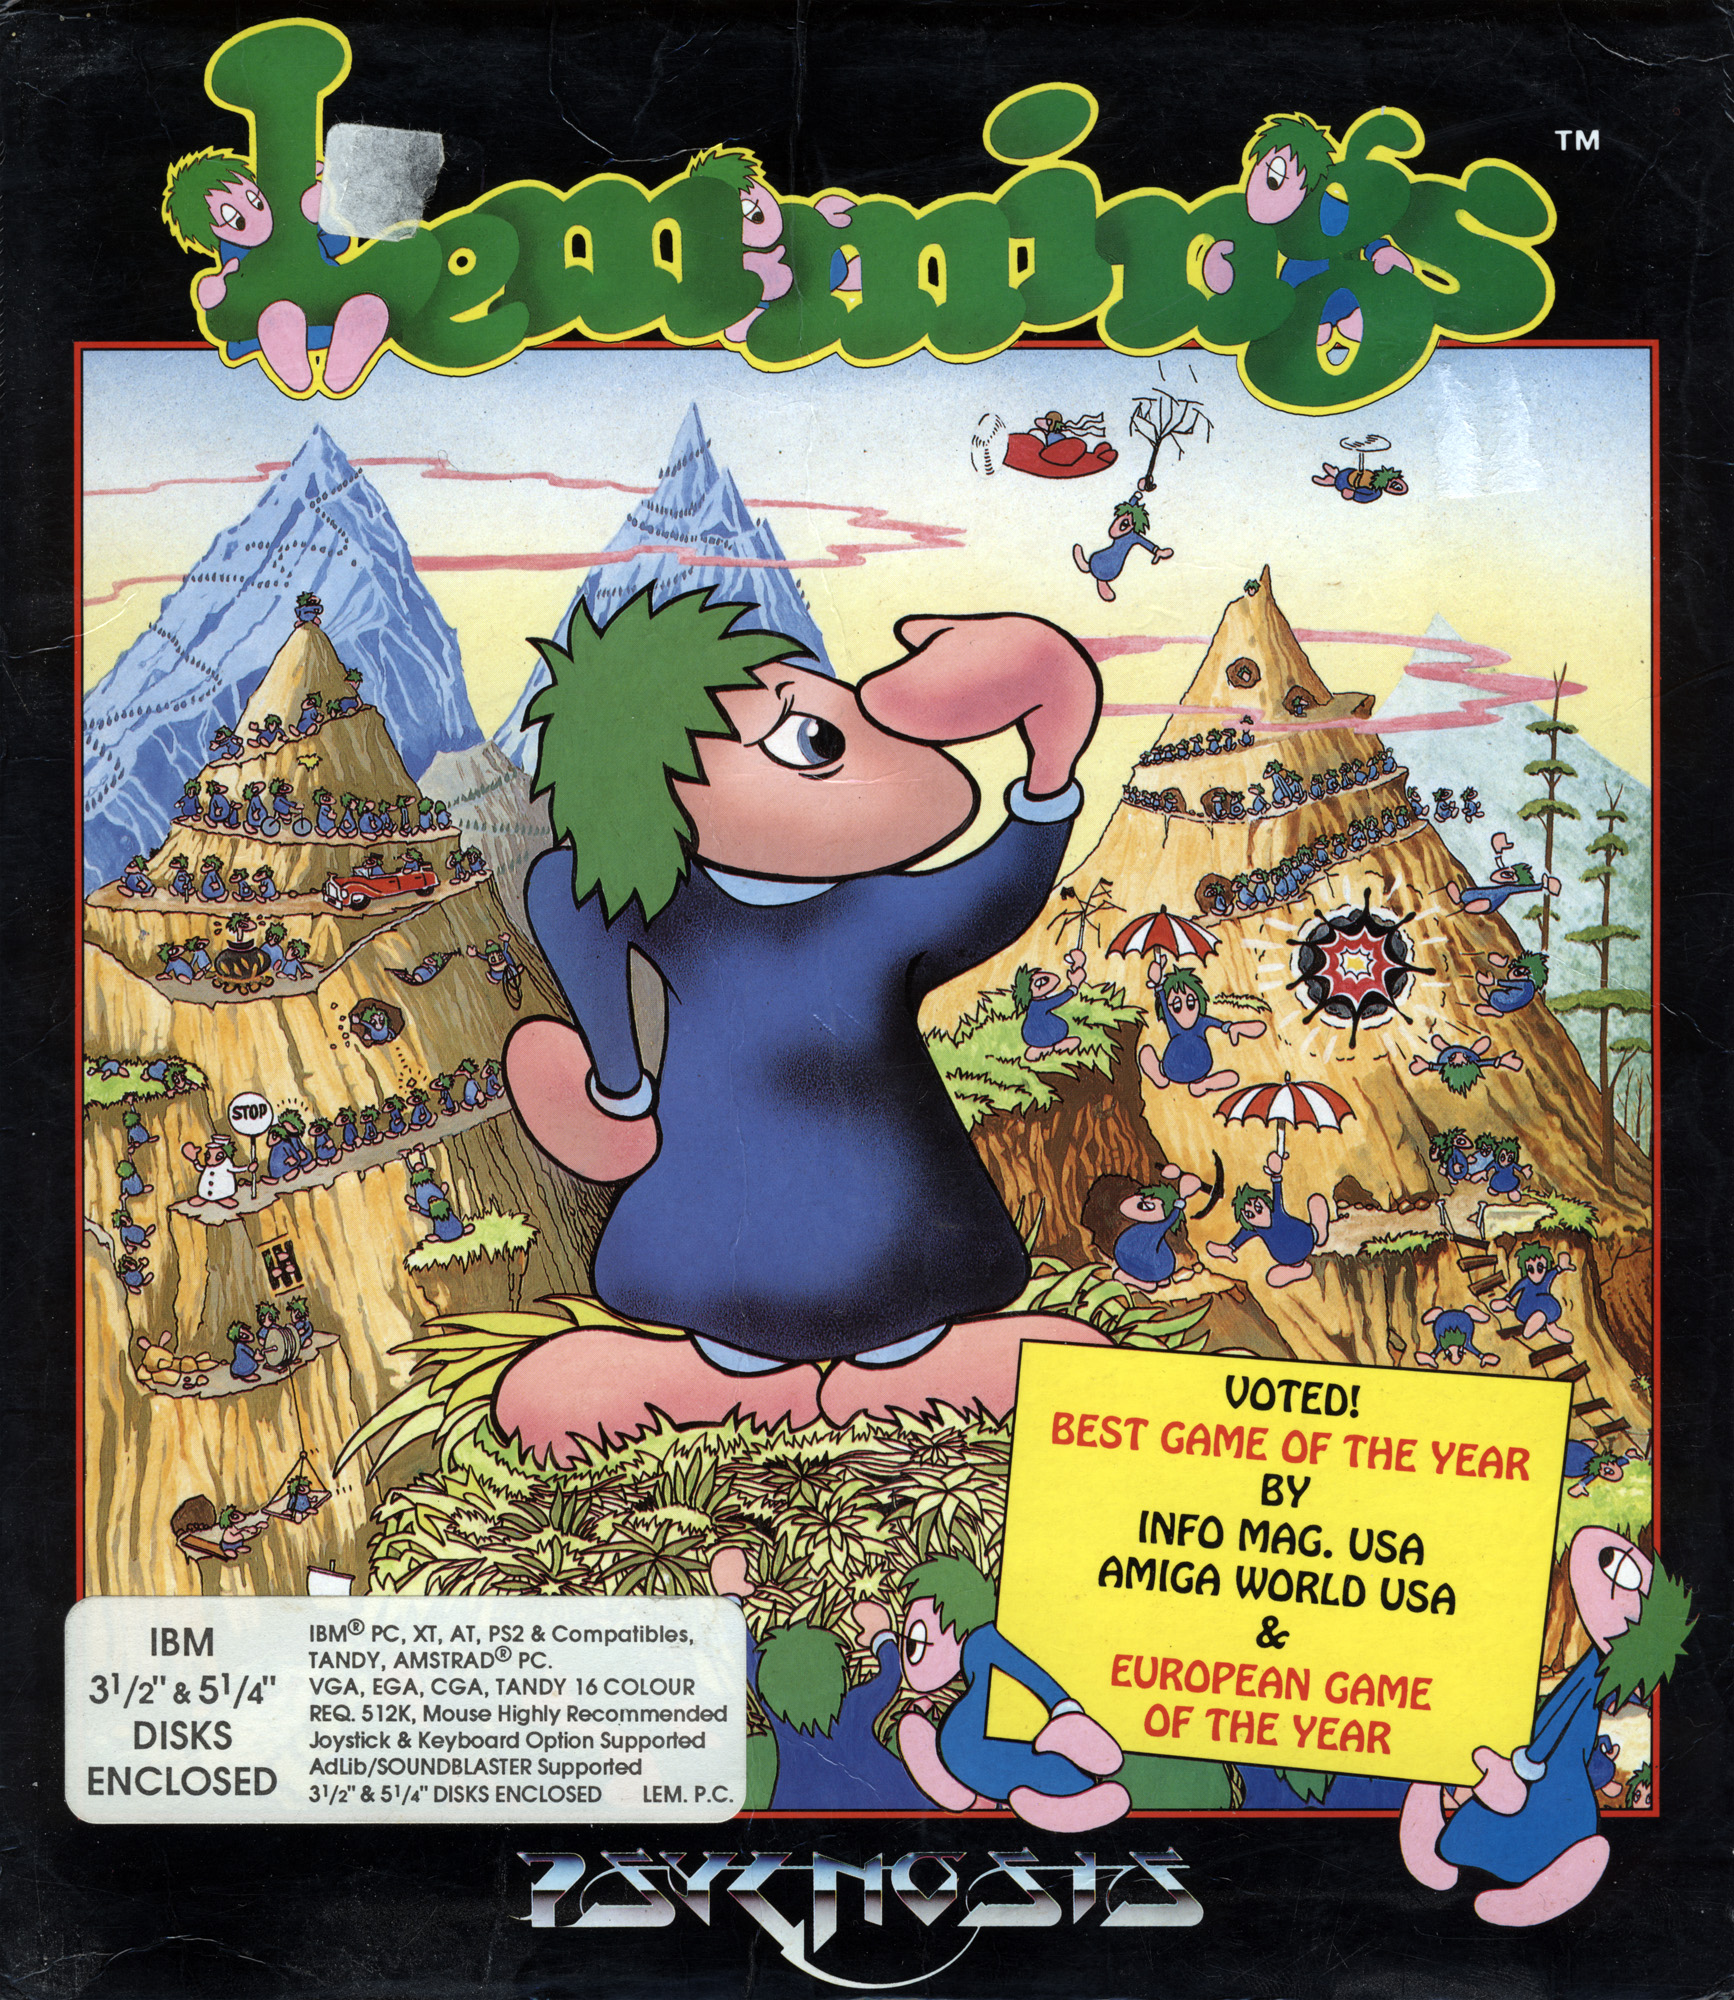 Lemmings game jumping off a cliff - photo#21